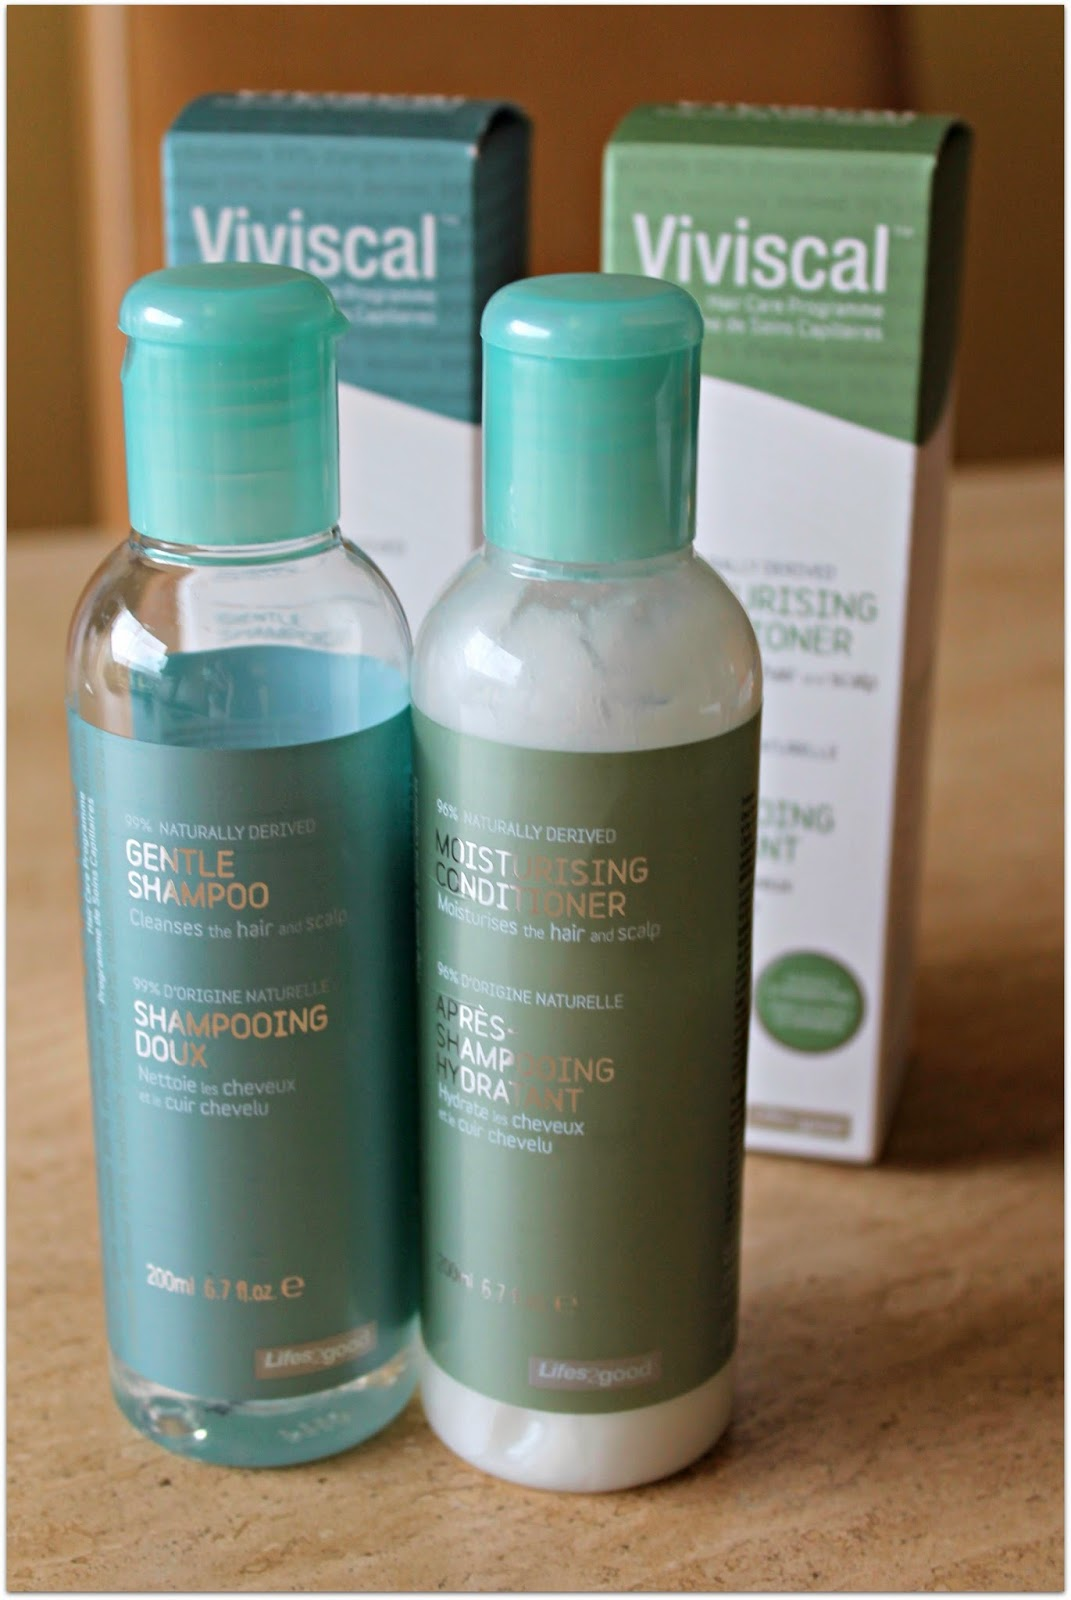 Viviscal Gentle Shampoo & Moisturising Conditioner